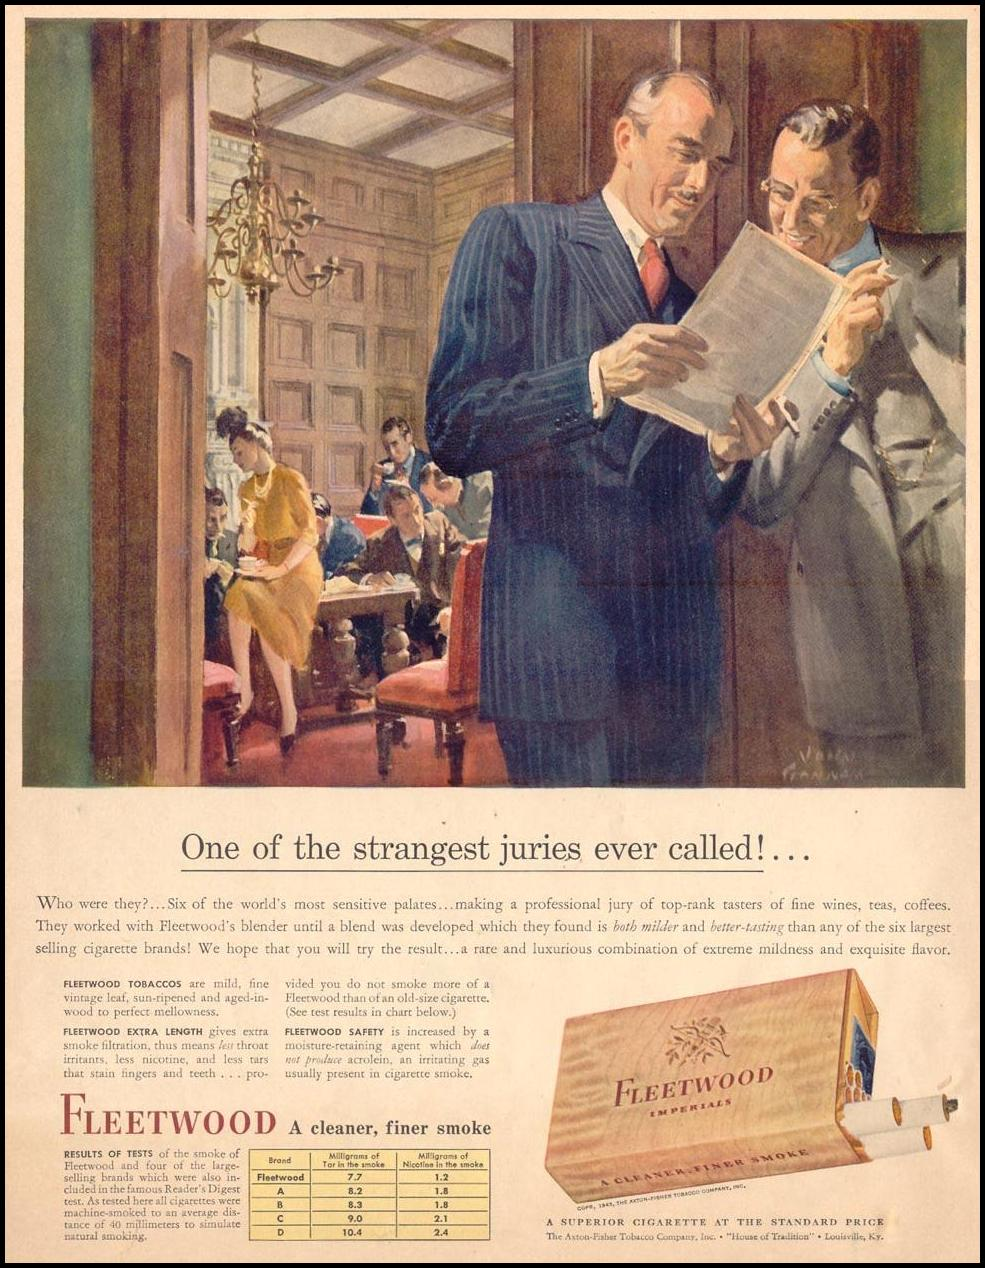 FLEETWOOD CIGARETTES LIFE 05/24/1943